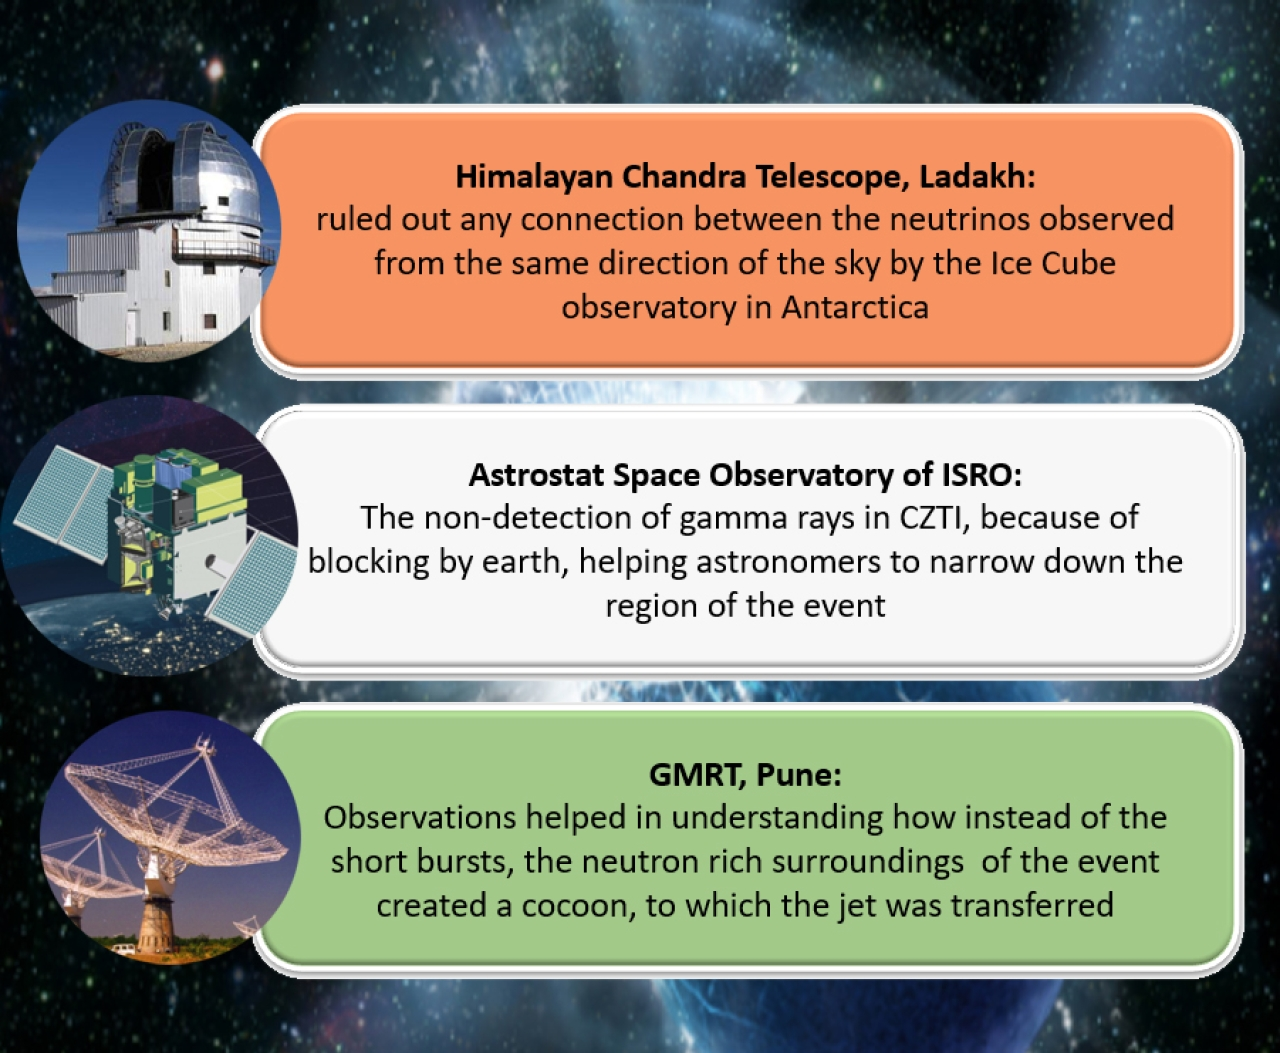 Various Indian organisations that were involved in studying the neutron star collision.